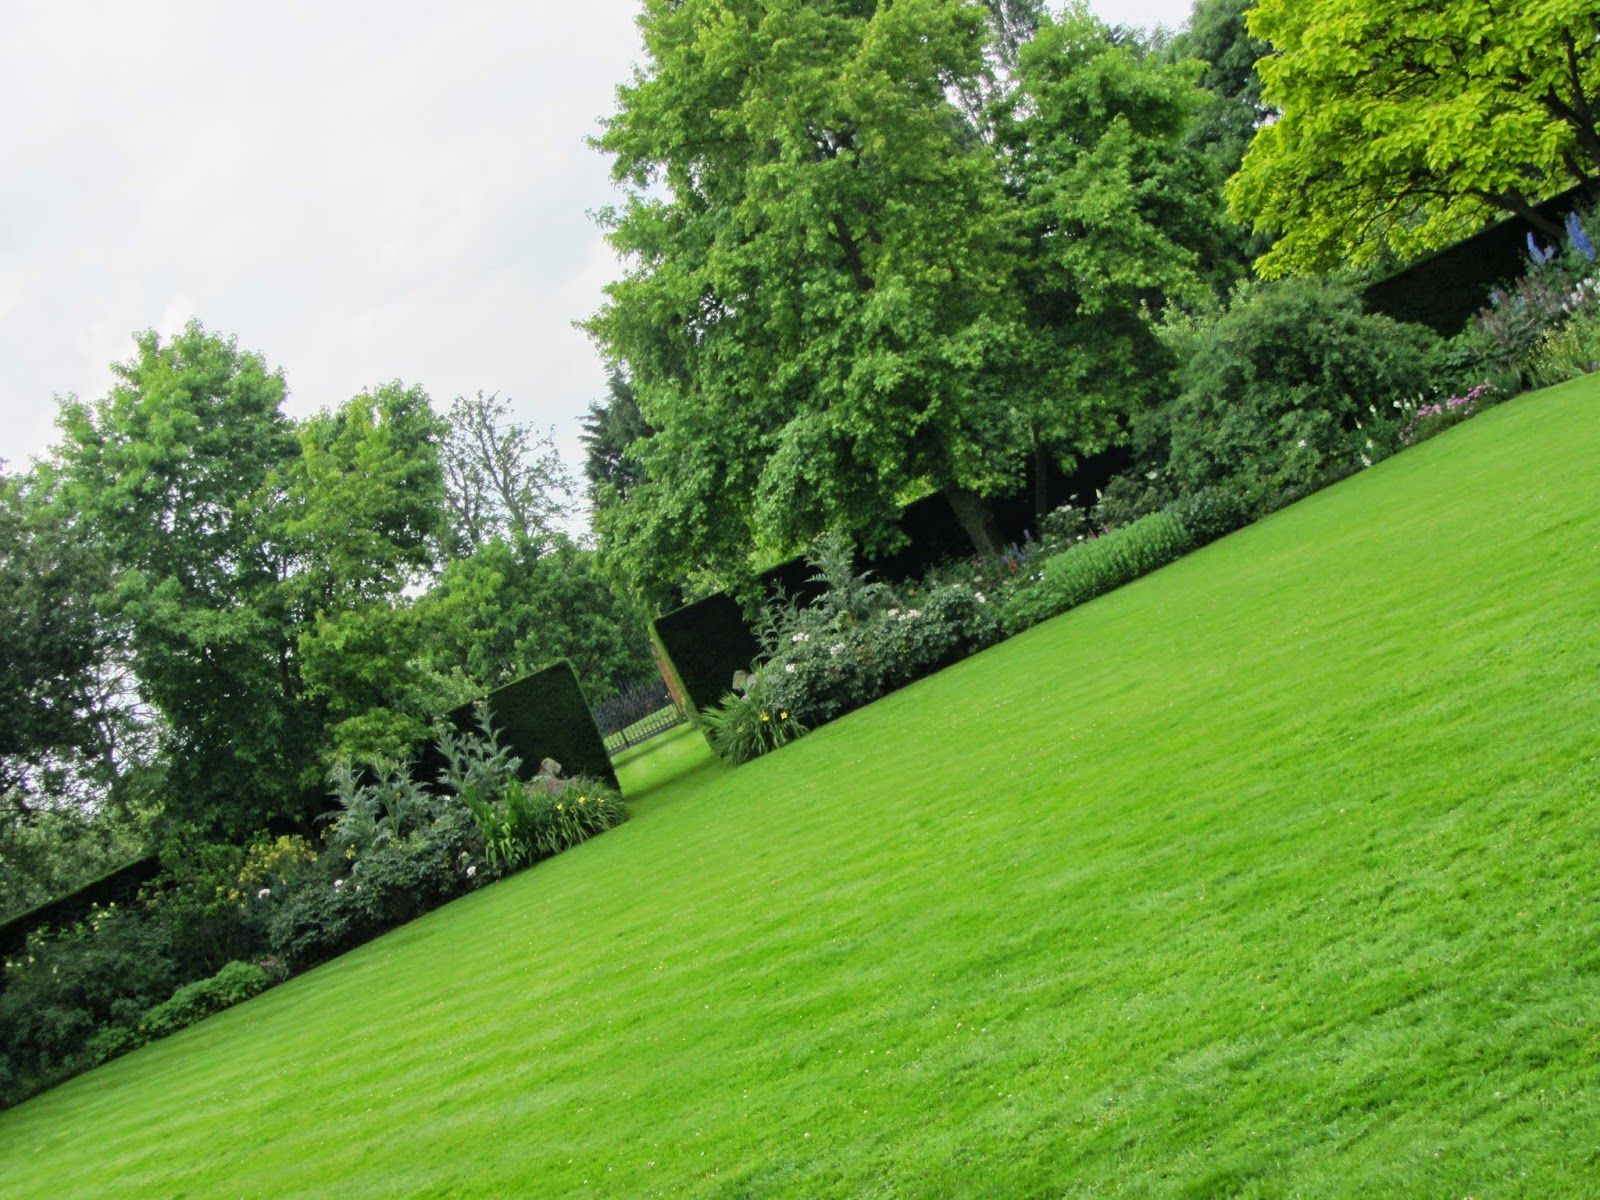 Ham photos rear garden at ormeley lodge - As Did The Lawn